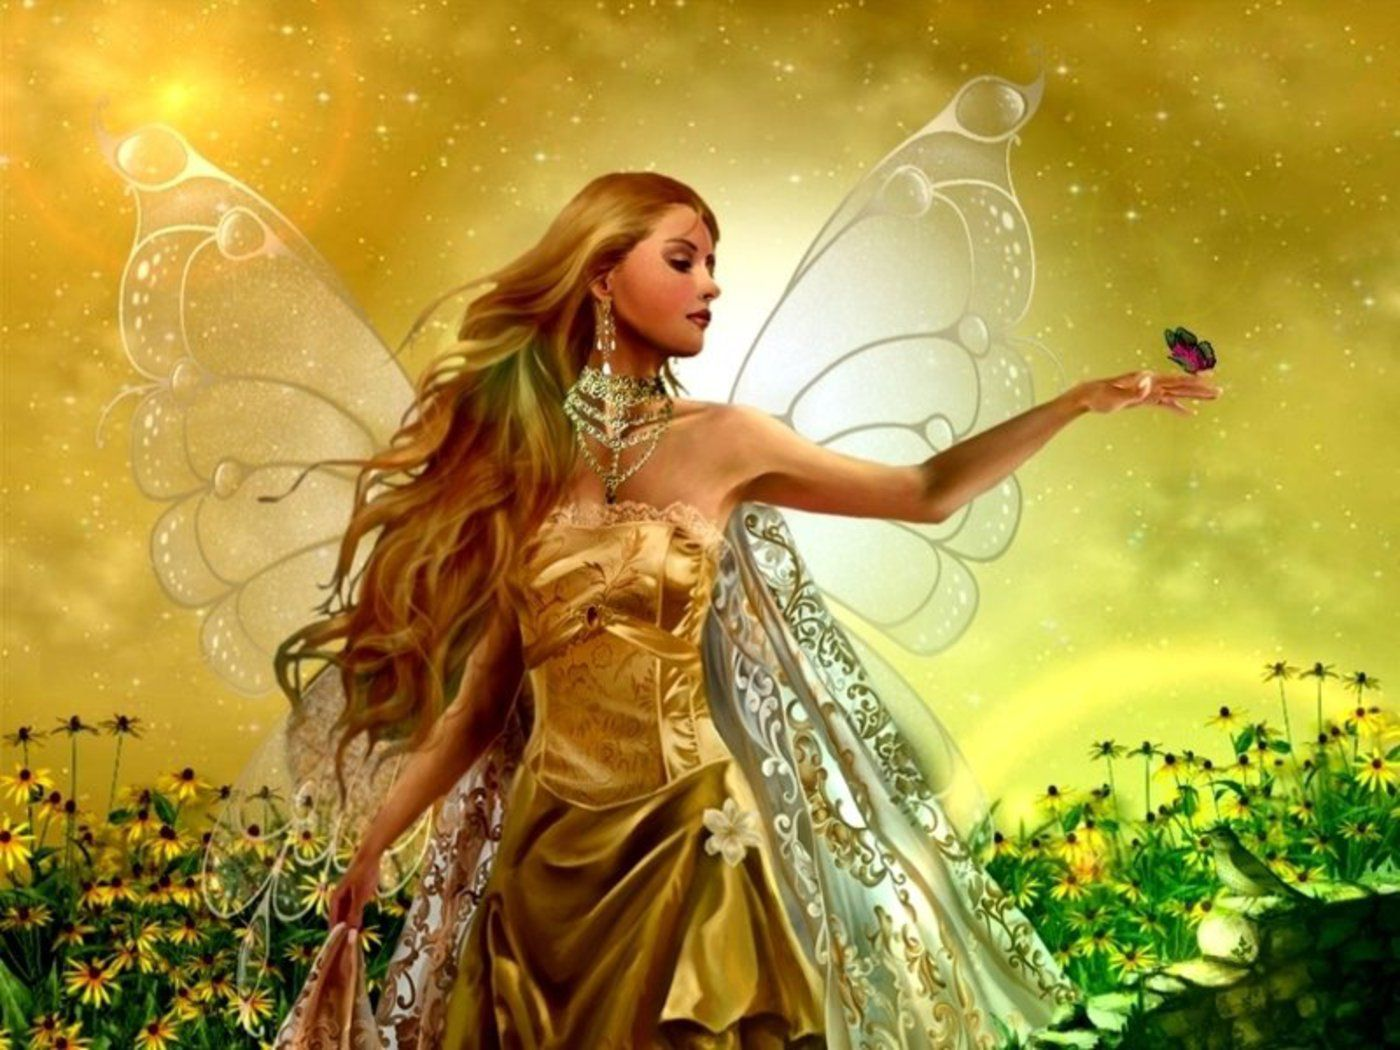 1400x1050 Fairy And Butterfly Angel Wallpaper 1400x1050 | Full HD ...